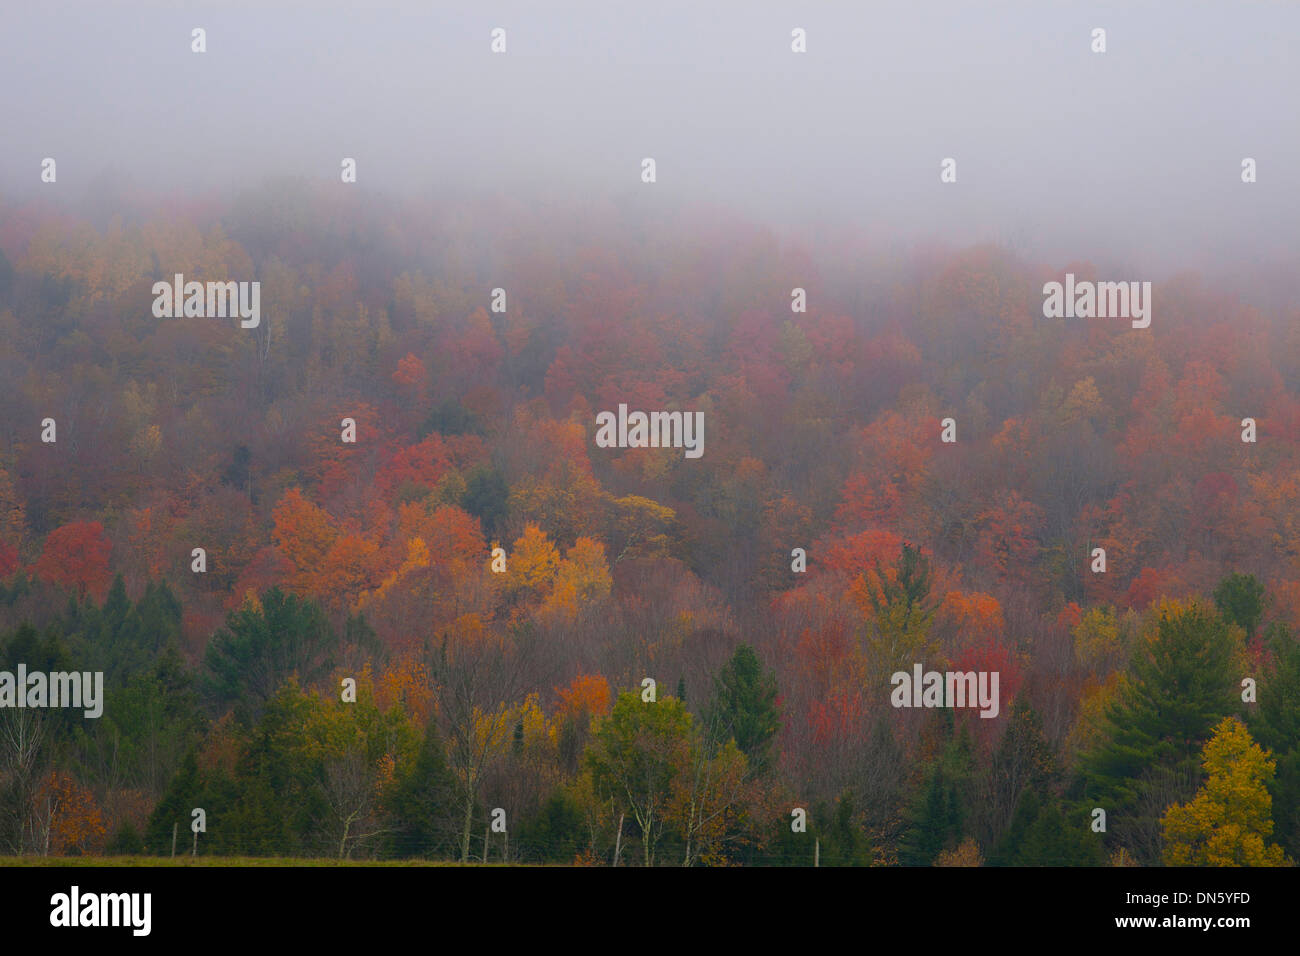 Foggy forest on an early morning in autumn, Eastern Townships, Quebec, Canada - Stock Image